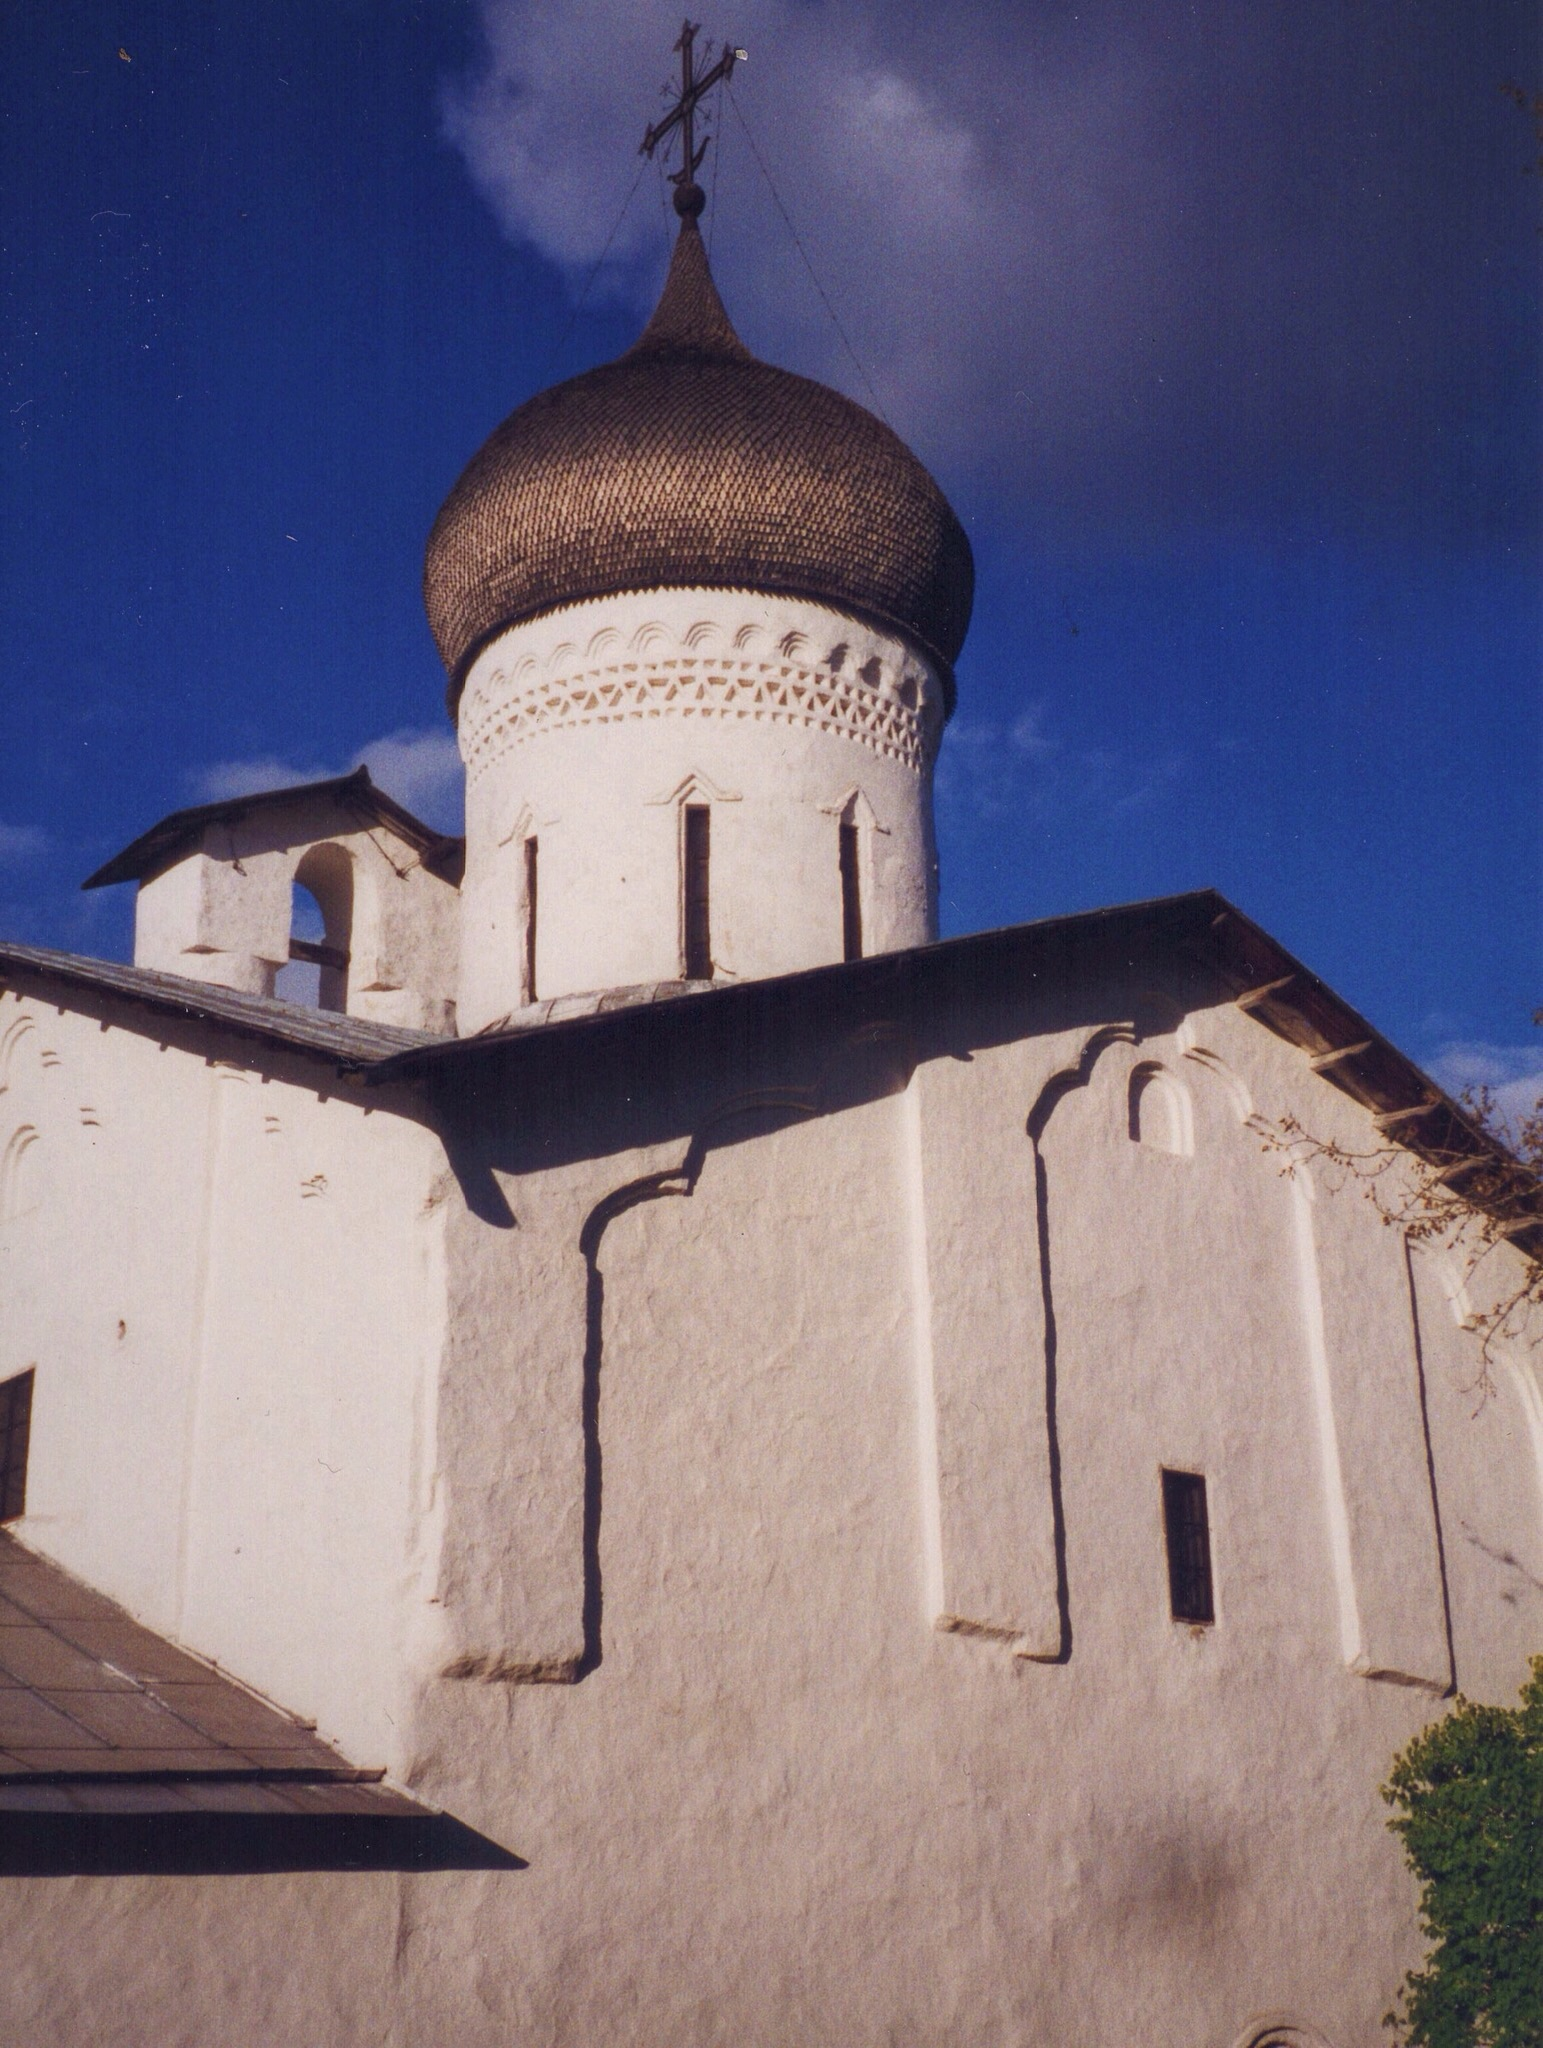 """A tour guide we had in Russia once mentioned the 'ABC syndrome' that would sometimes afflict foreign visitors. ABC meaning """"Another bloody church"""". Considering the sheer number of churchs and cathedrals in western Russia despite the mass destruction of them during Soviet times, it's mind-boggling to imagine how many there had been prior to the Revolution."""